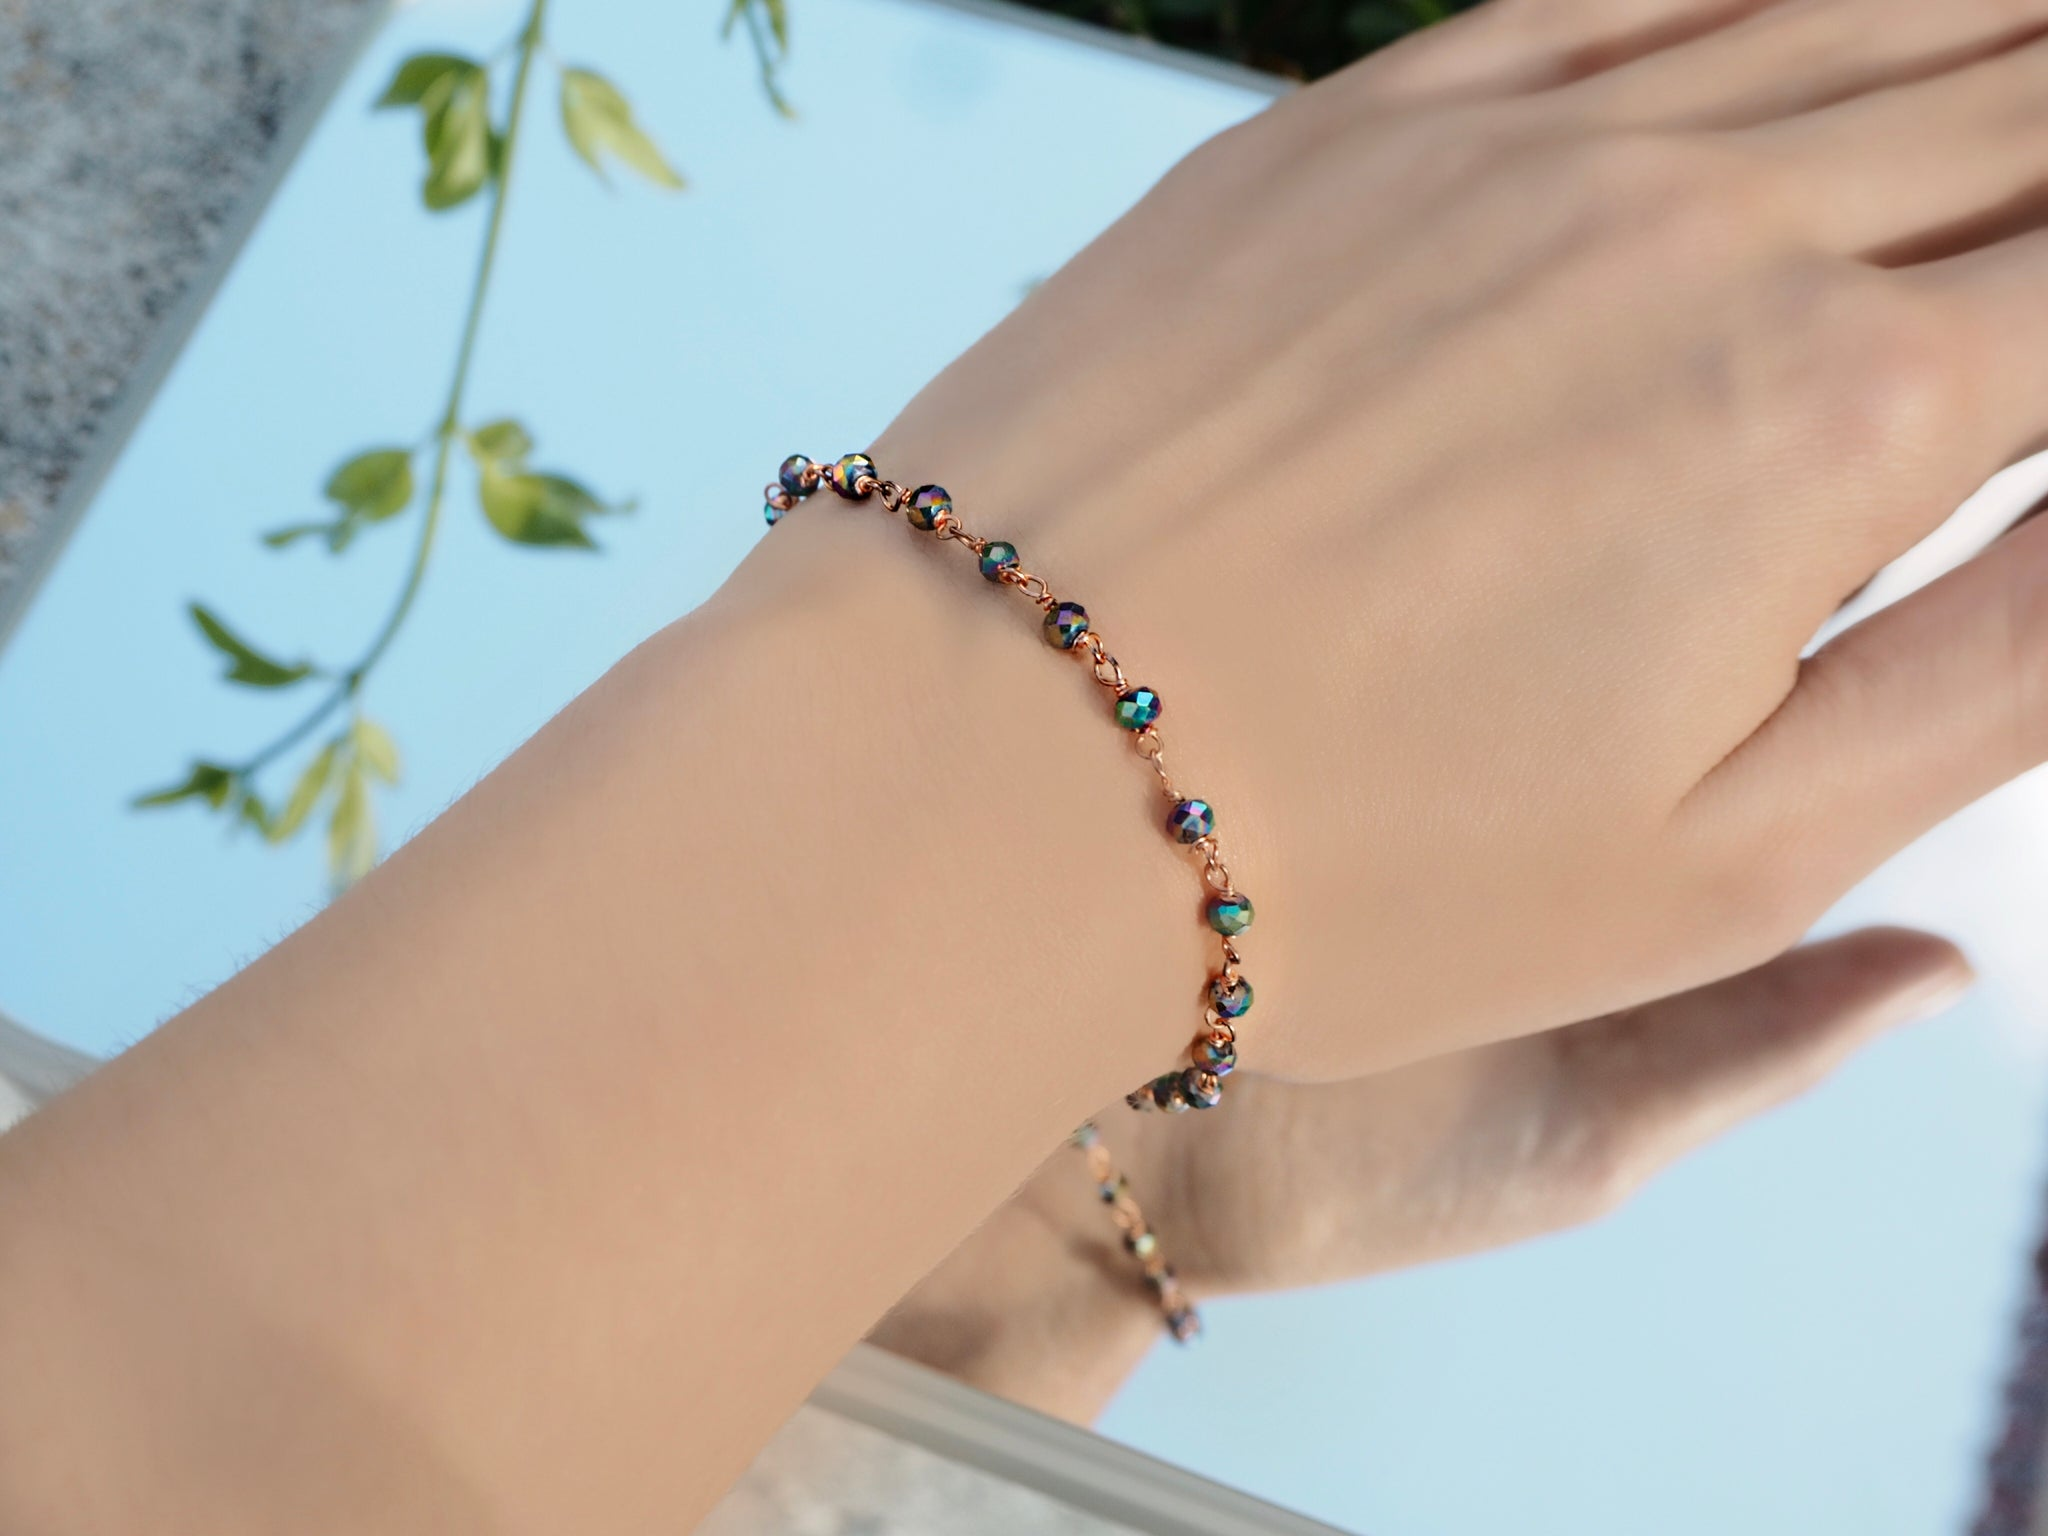 Multicolored hematite crystals bracelet